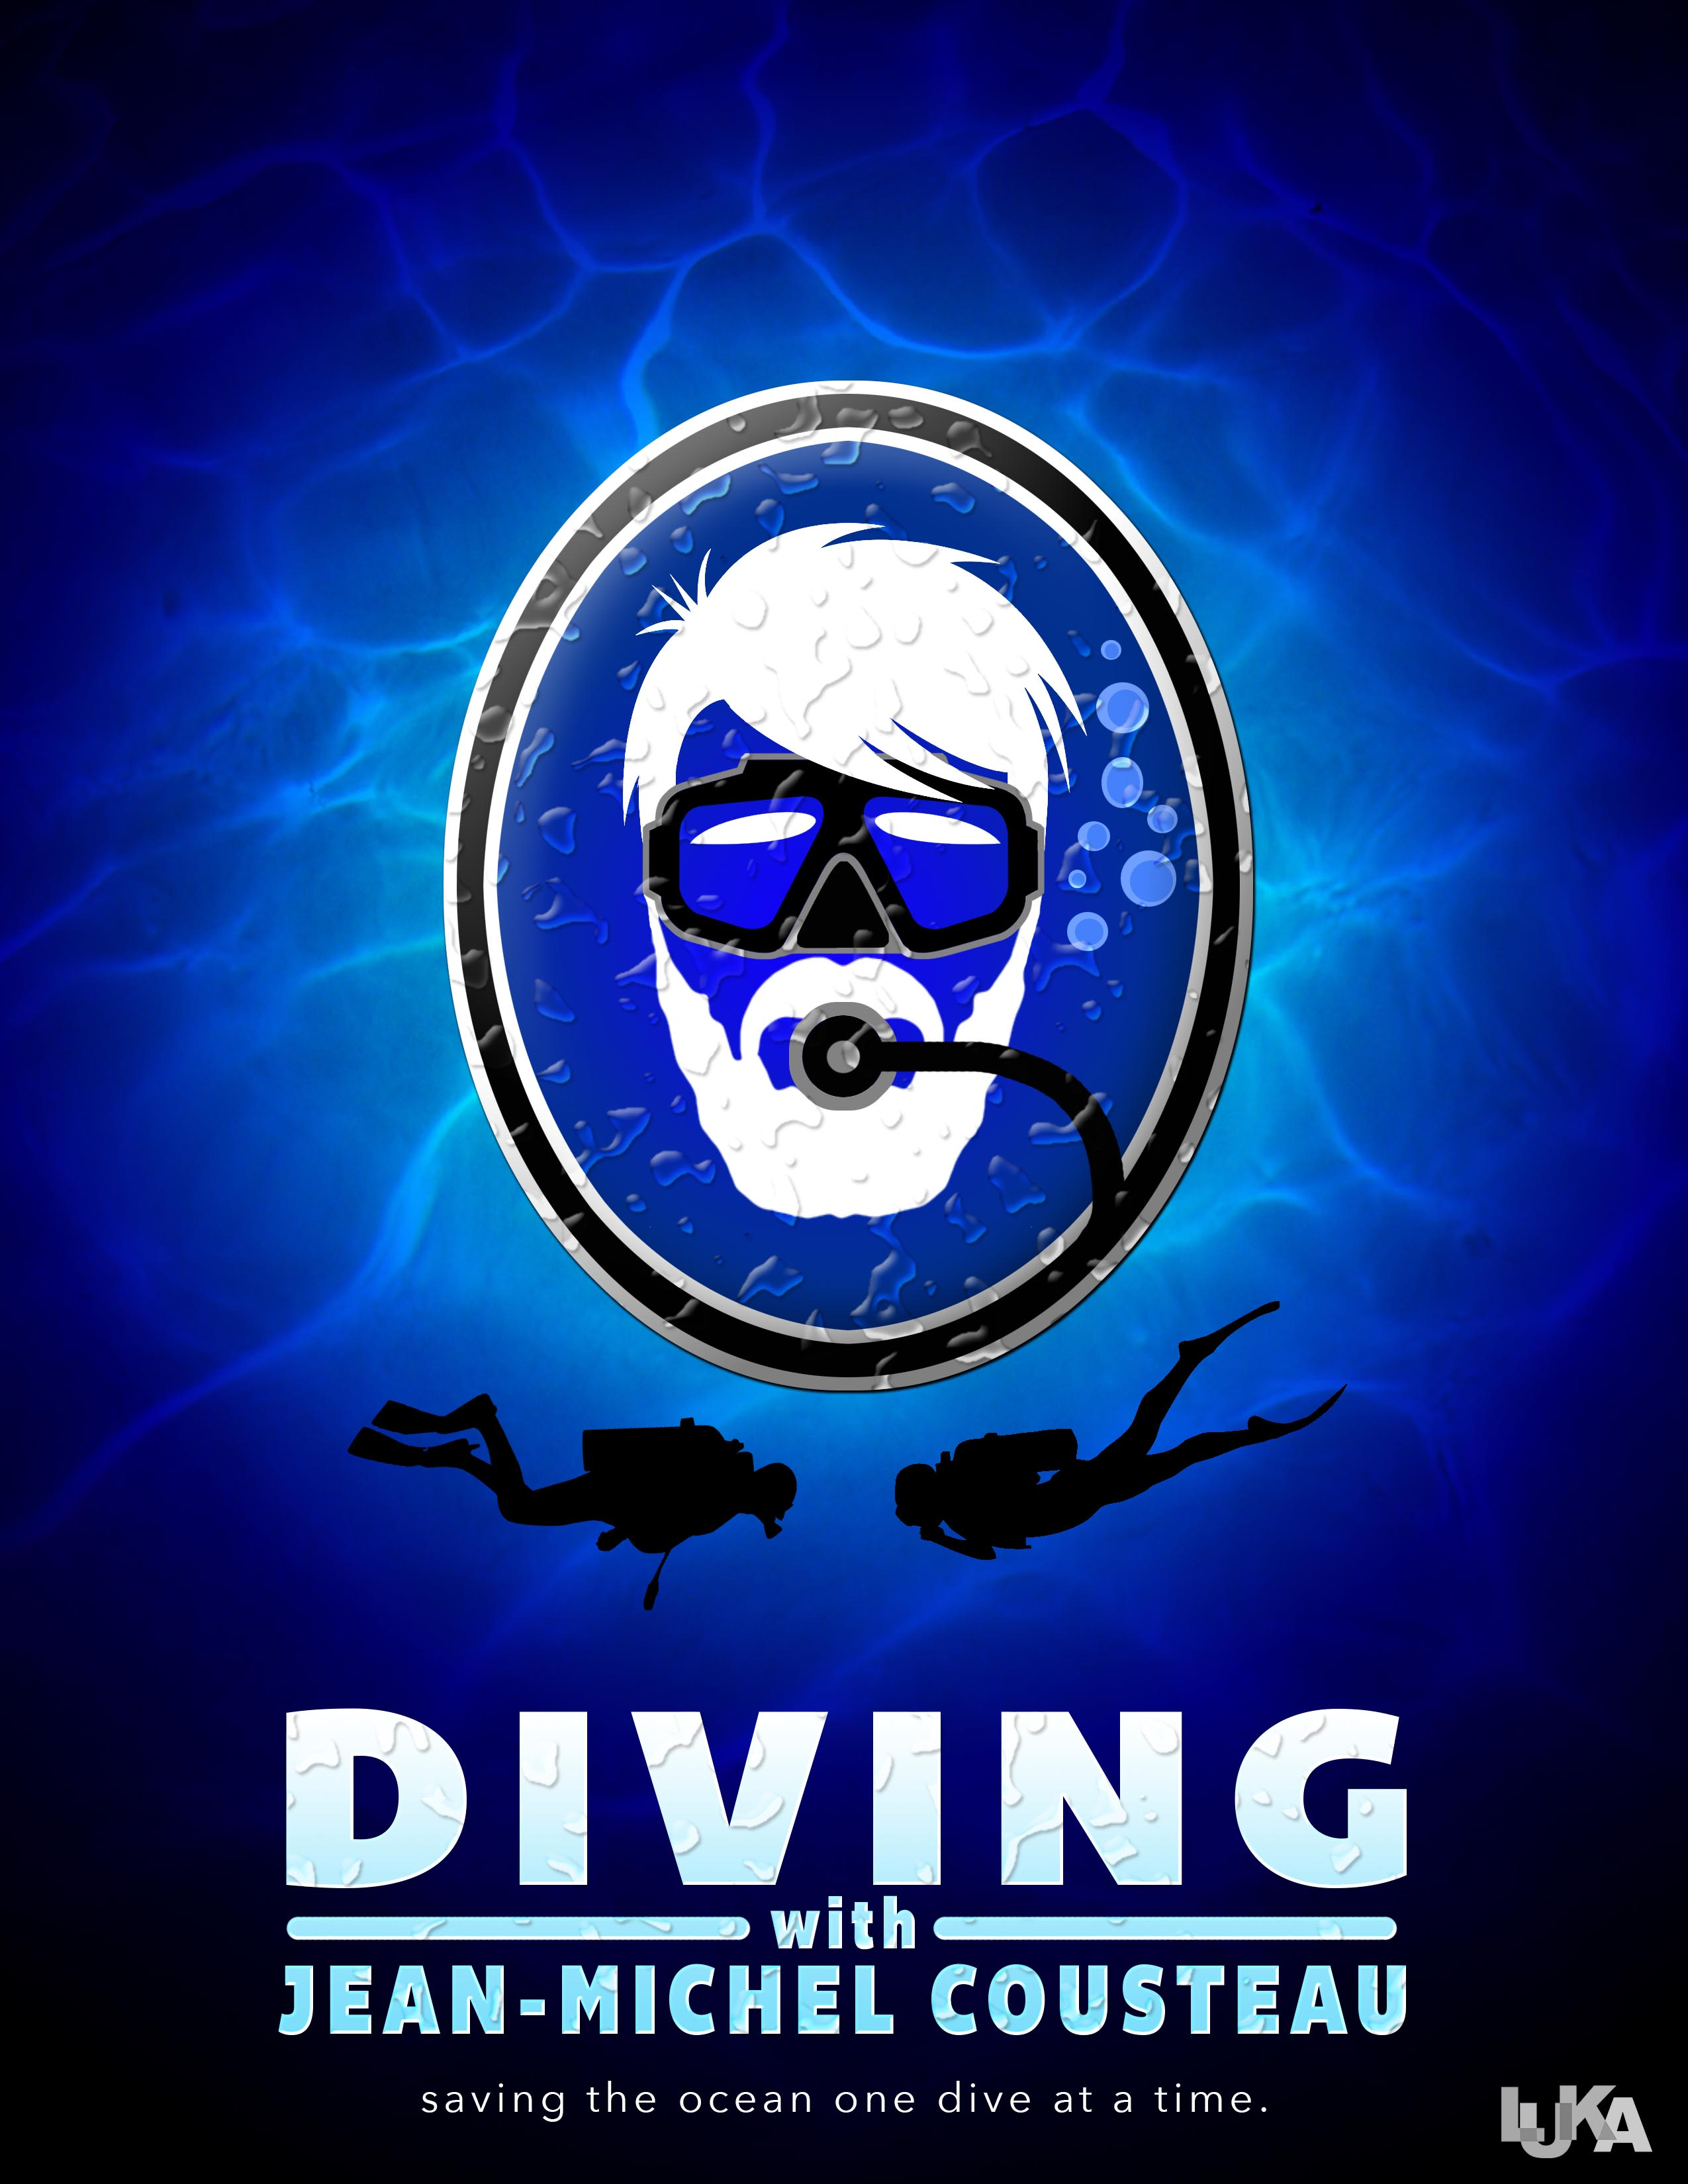 Diving with Jean-Michel Cousteau